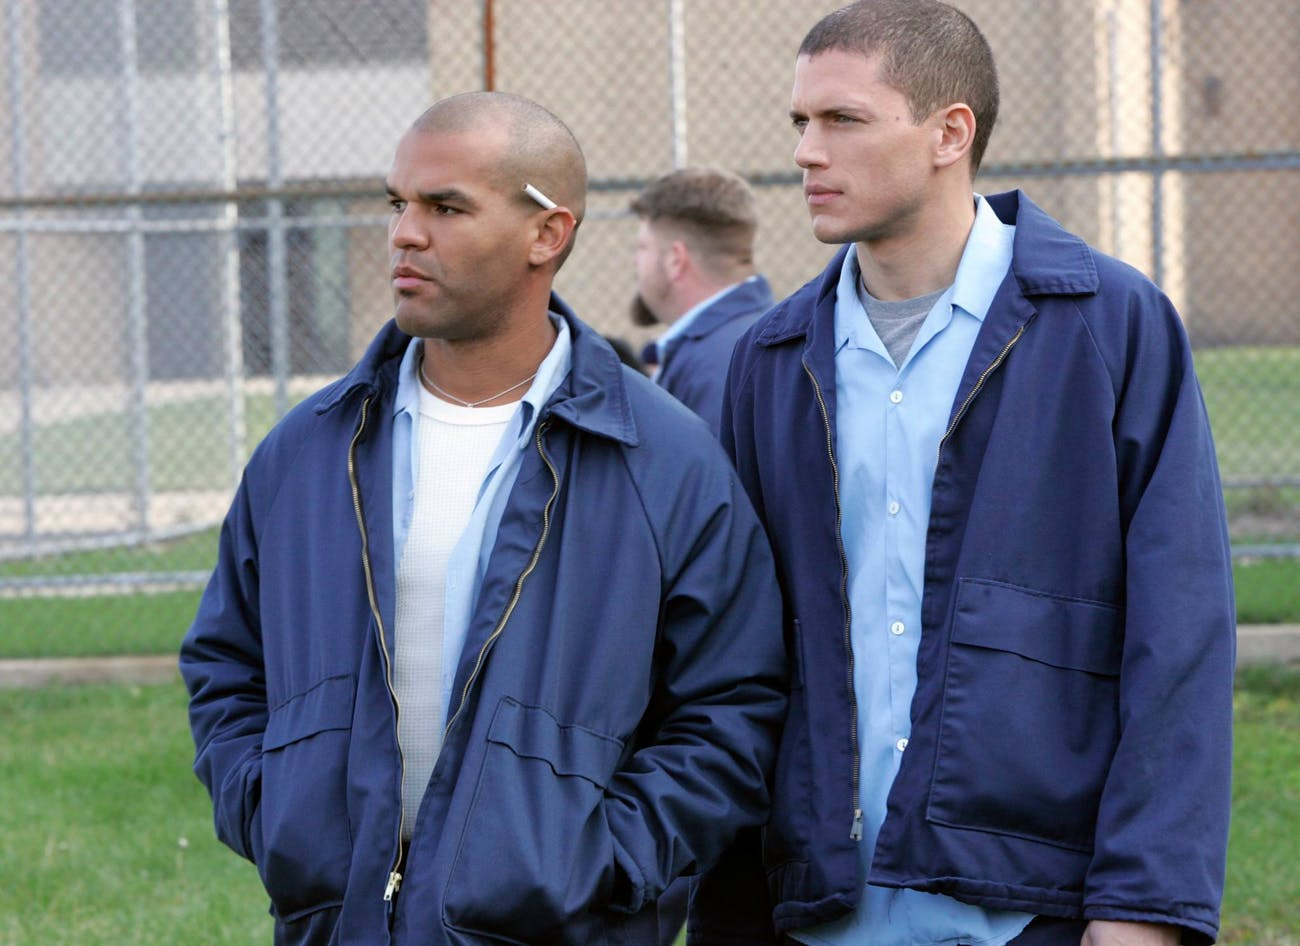 Amaury Nolasco and Wentworth Miller in 'Prison Break'